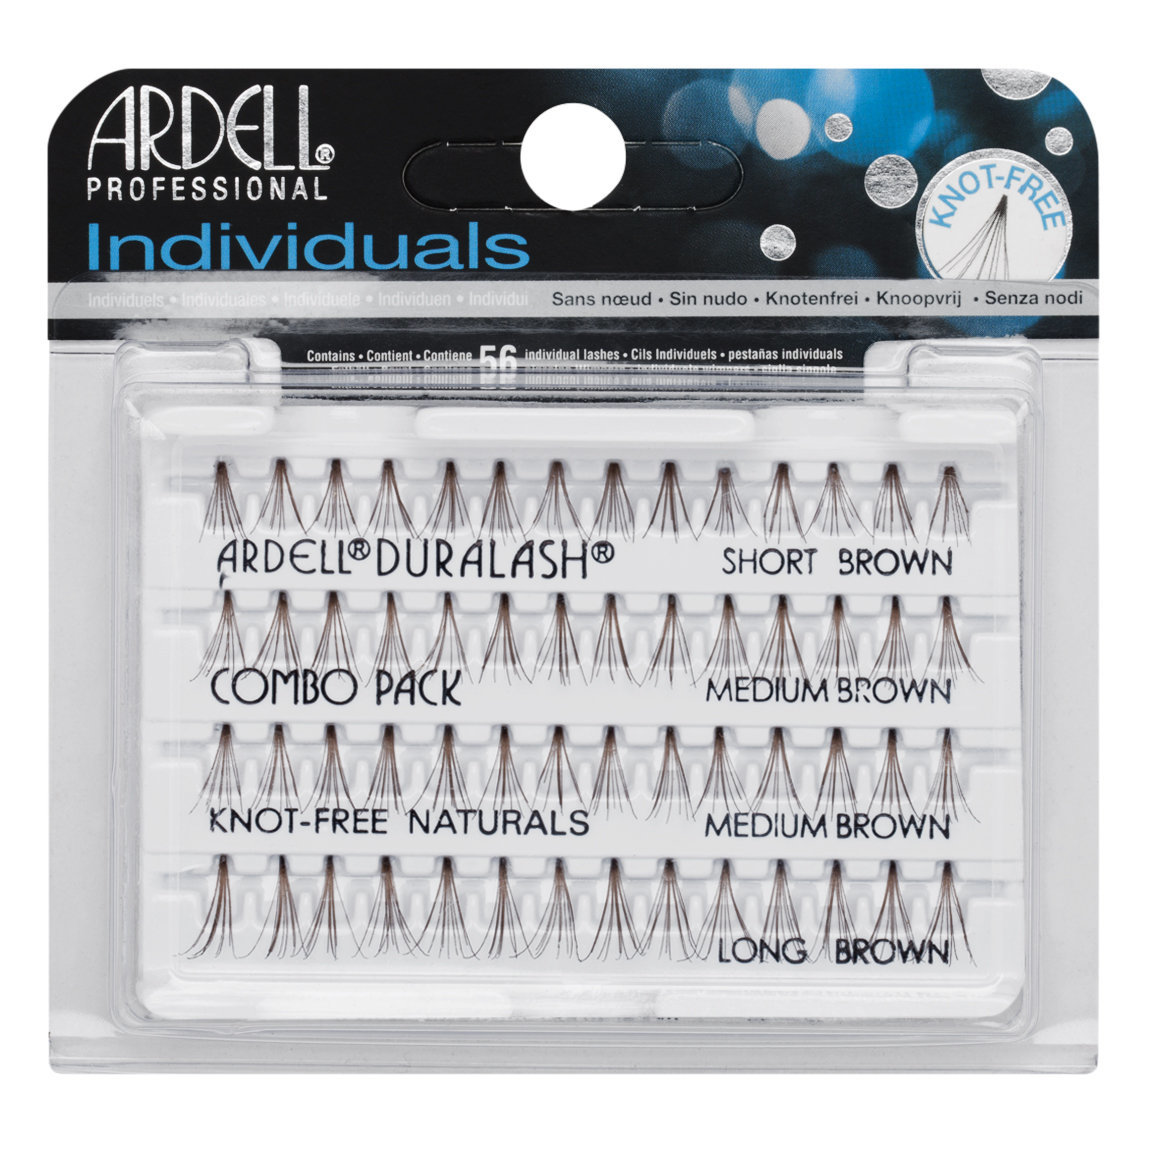 Ardell Individuals Knot-Free Natural Lashes Combo Brown